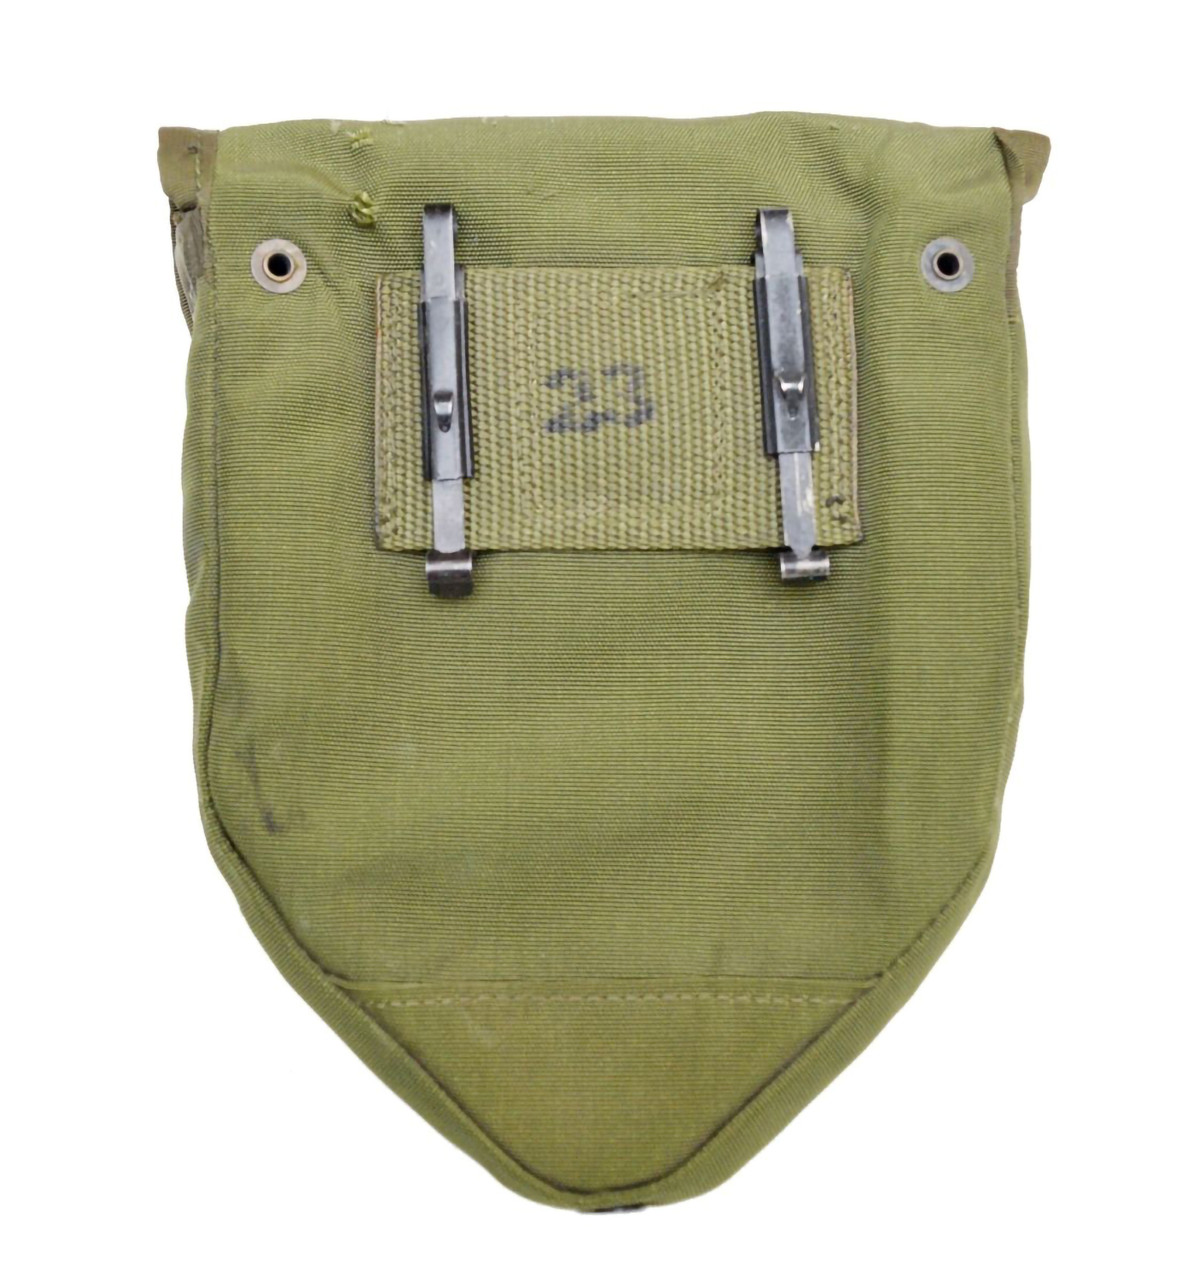 Intrenching Tool Cover, Light Weight